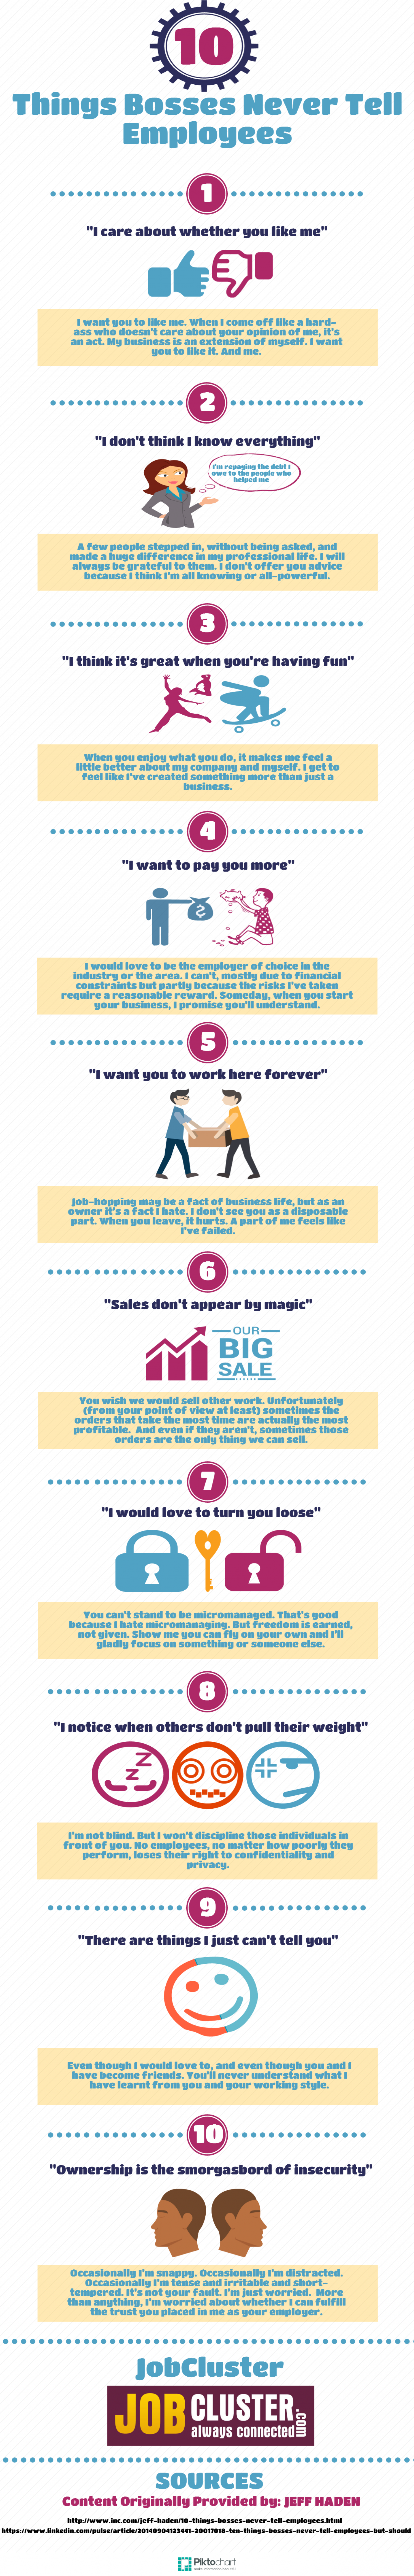 10 Things Bosses Never Tell Employees Infographic